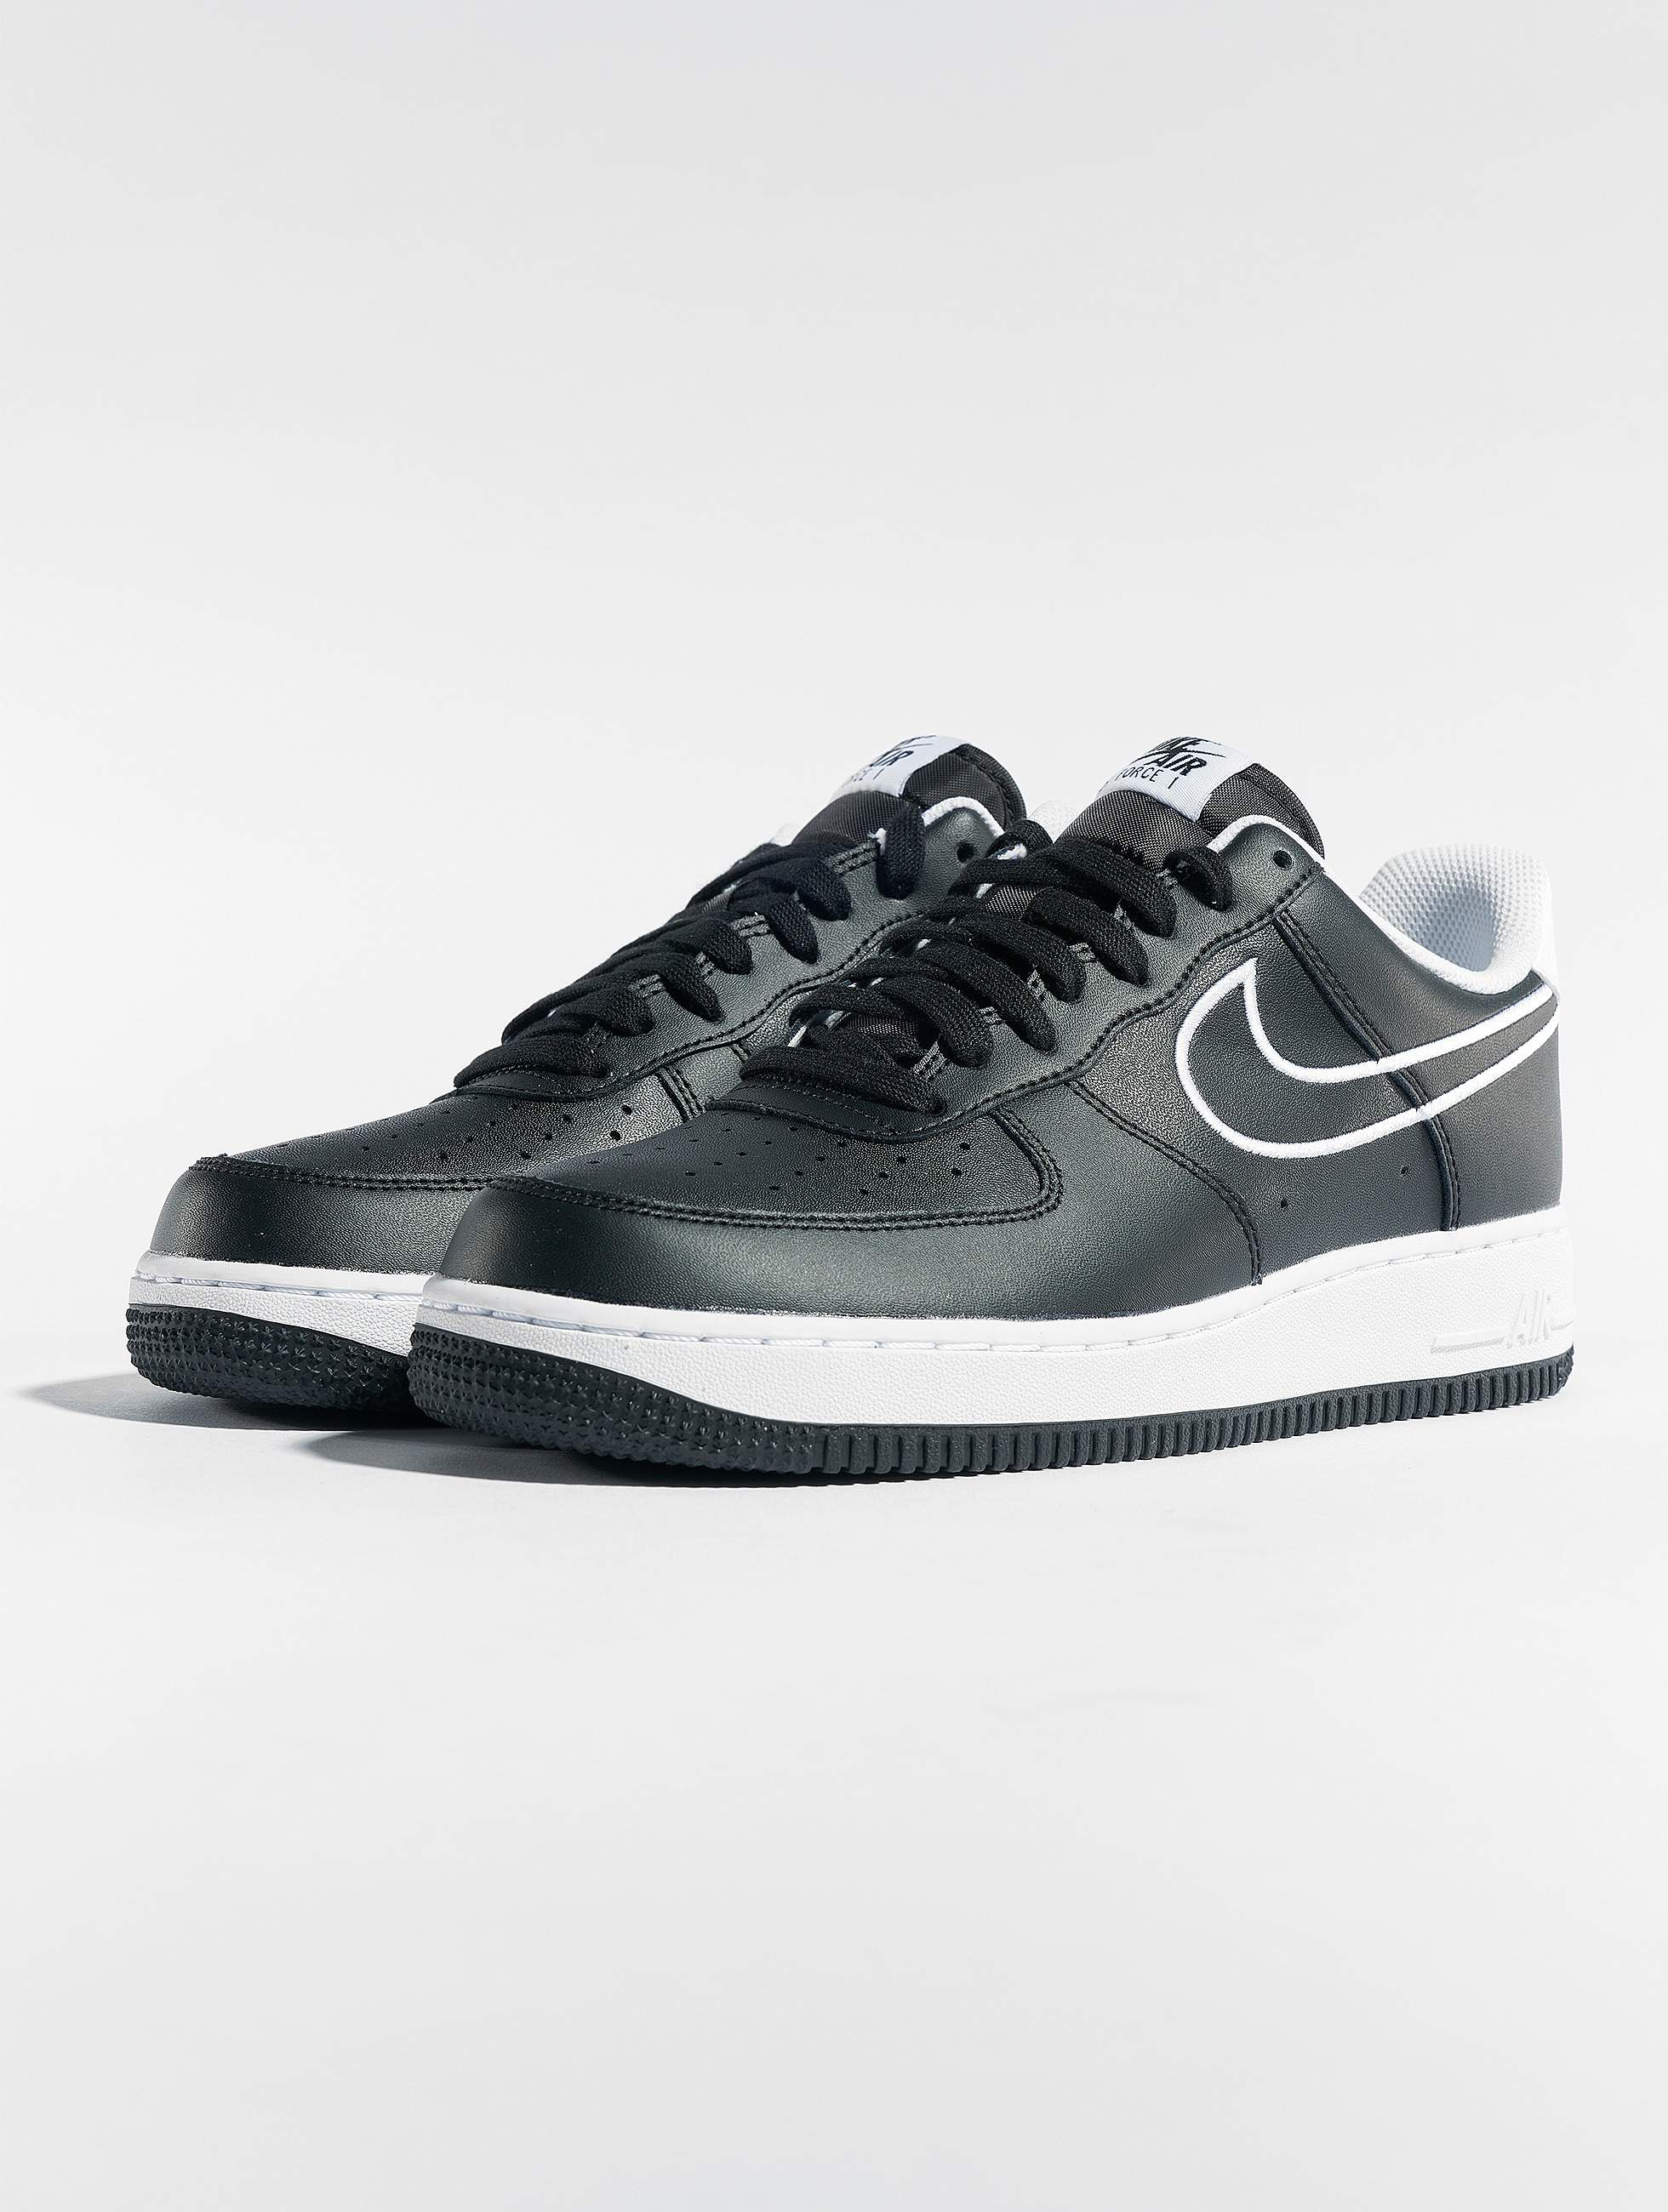 Nike 1 Blackwhite '07 Sneakers Leather Air Force DY9IH2WE